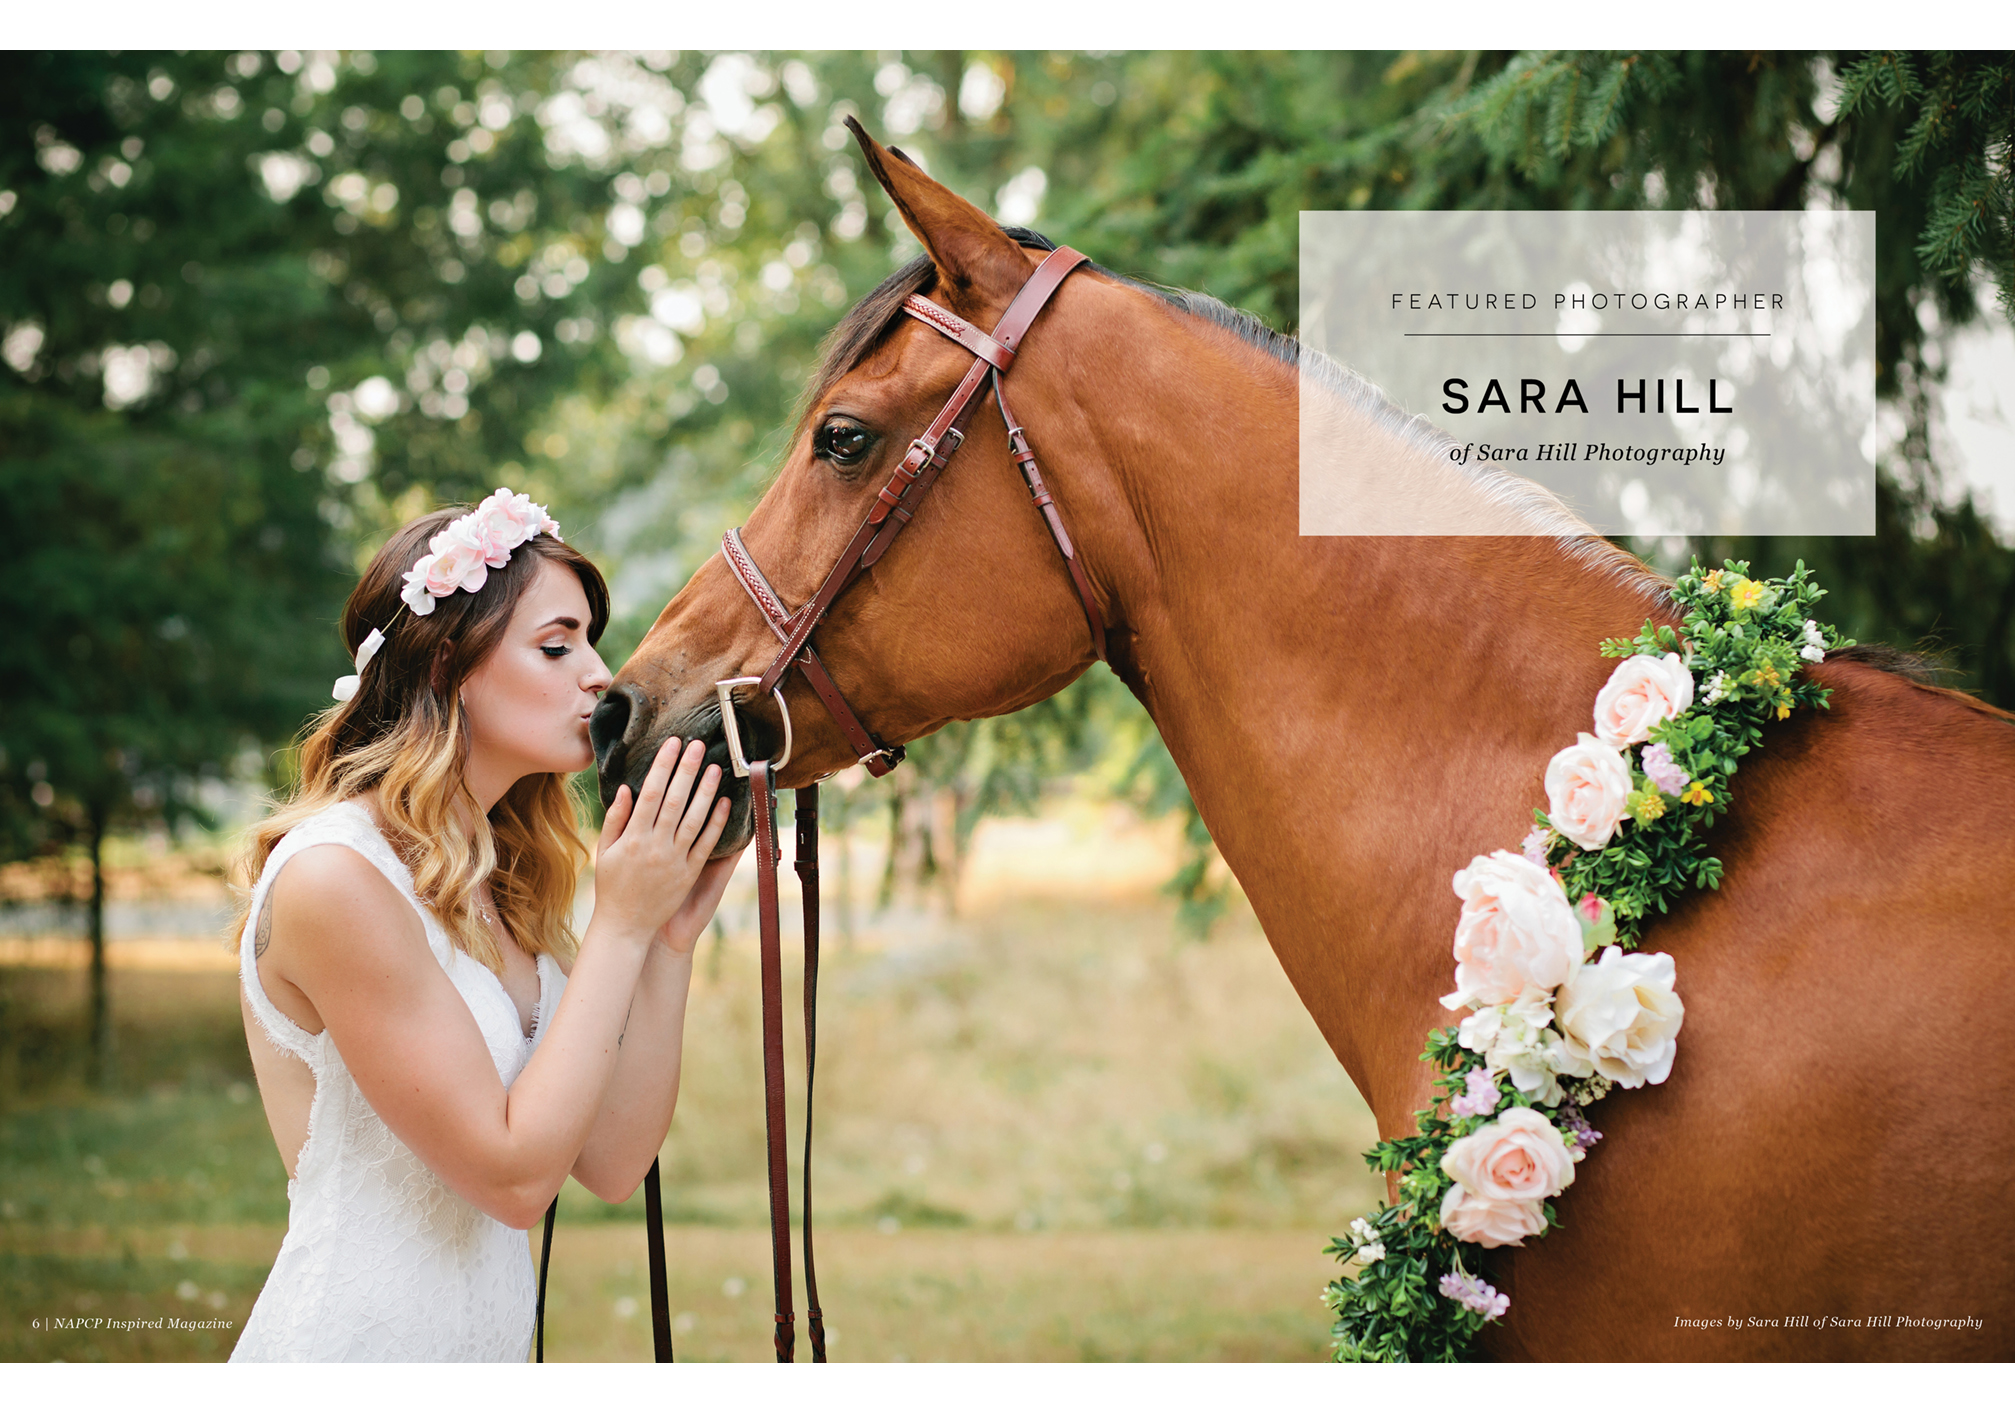 Featured Photographer Sara Hill of Sara Hill Photography